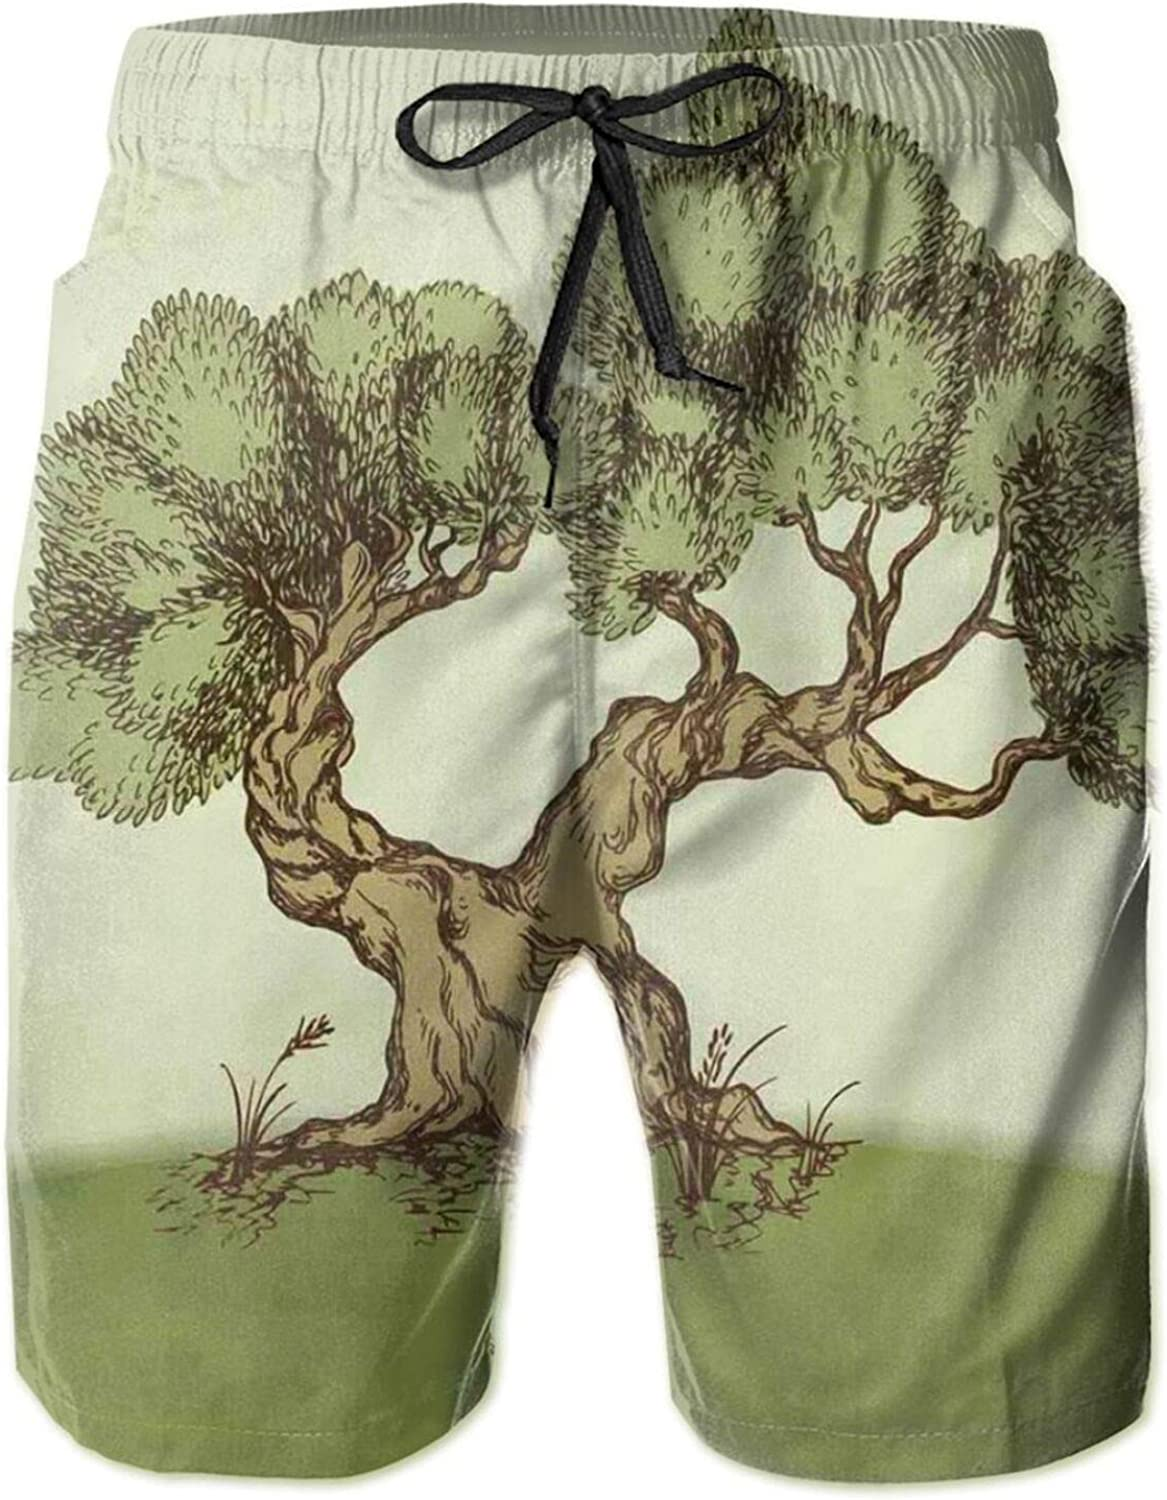 Hand Drawn Olive Tree On A Hill Sketch Nature Design Spring Drawstring Waist Beach Shorts for Men Swim Trucks Board Shorts with Mesh Lining,L